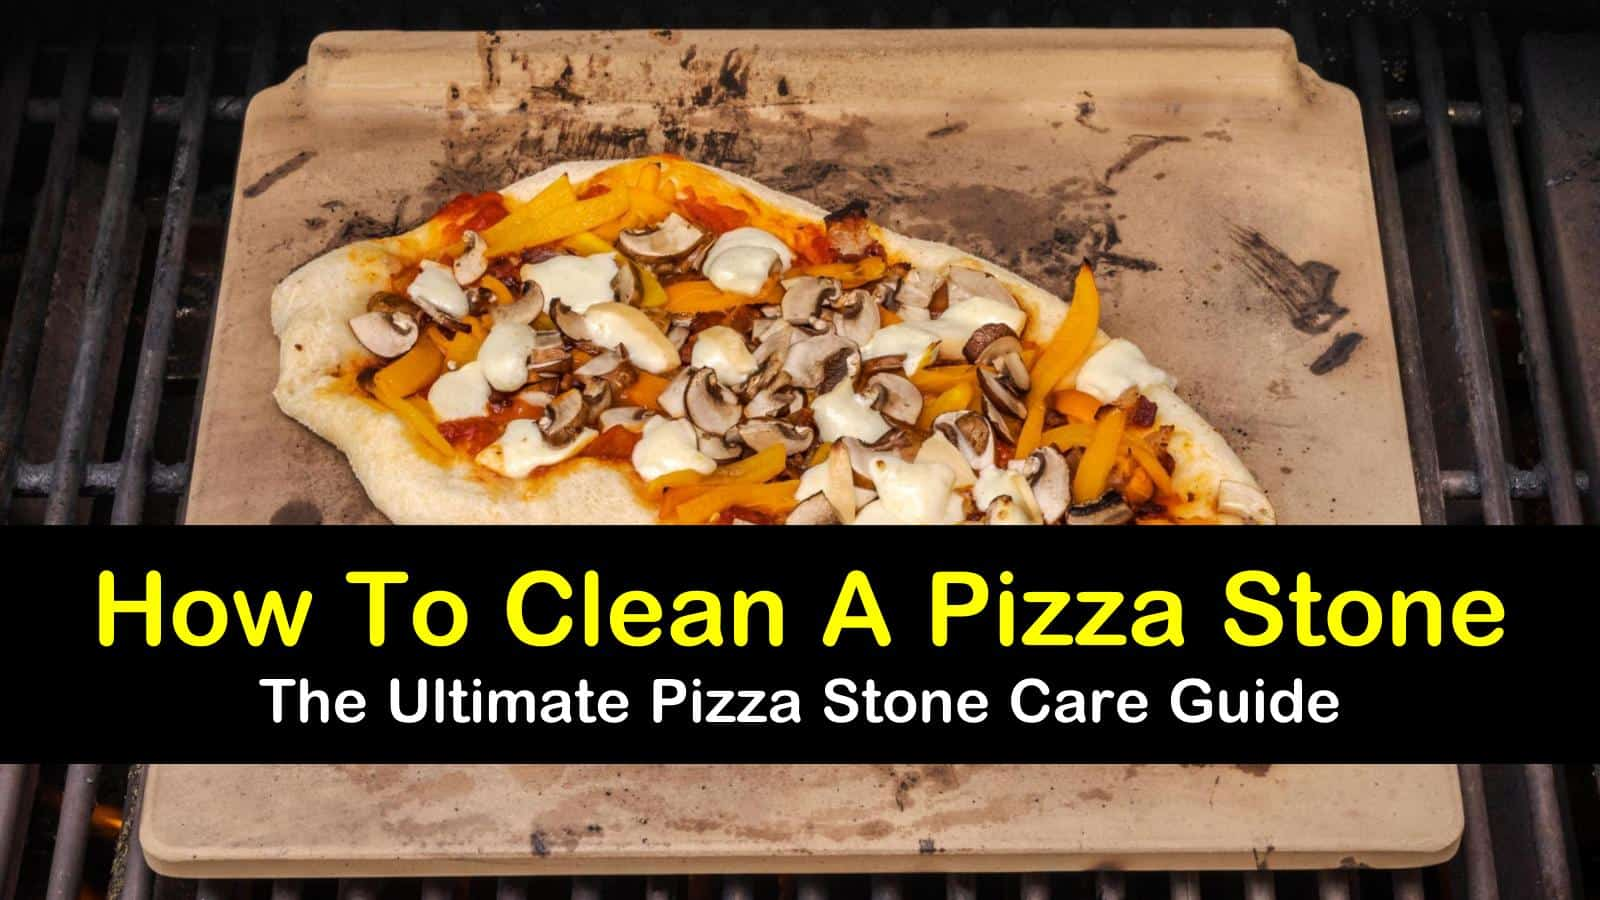 4 Highly Effective Ways To Clean A Pizza Stone